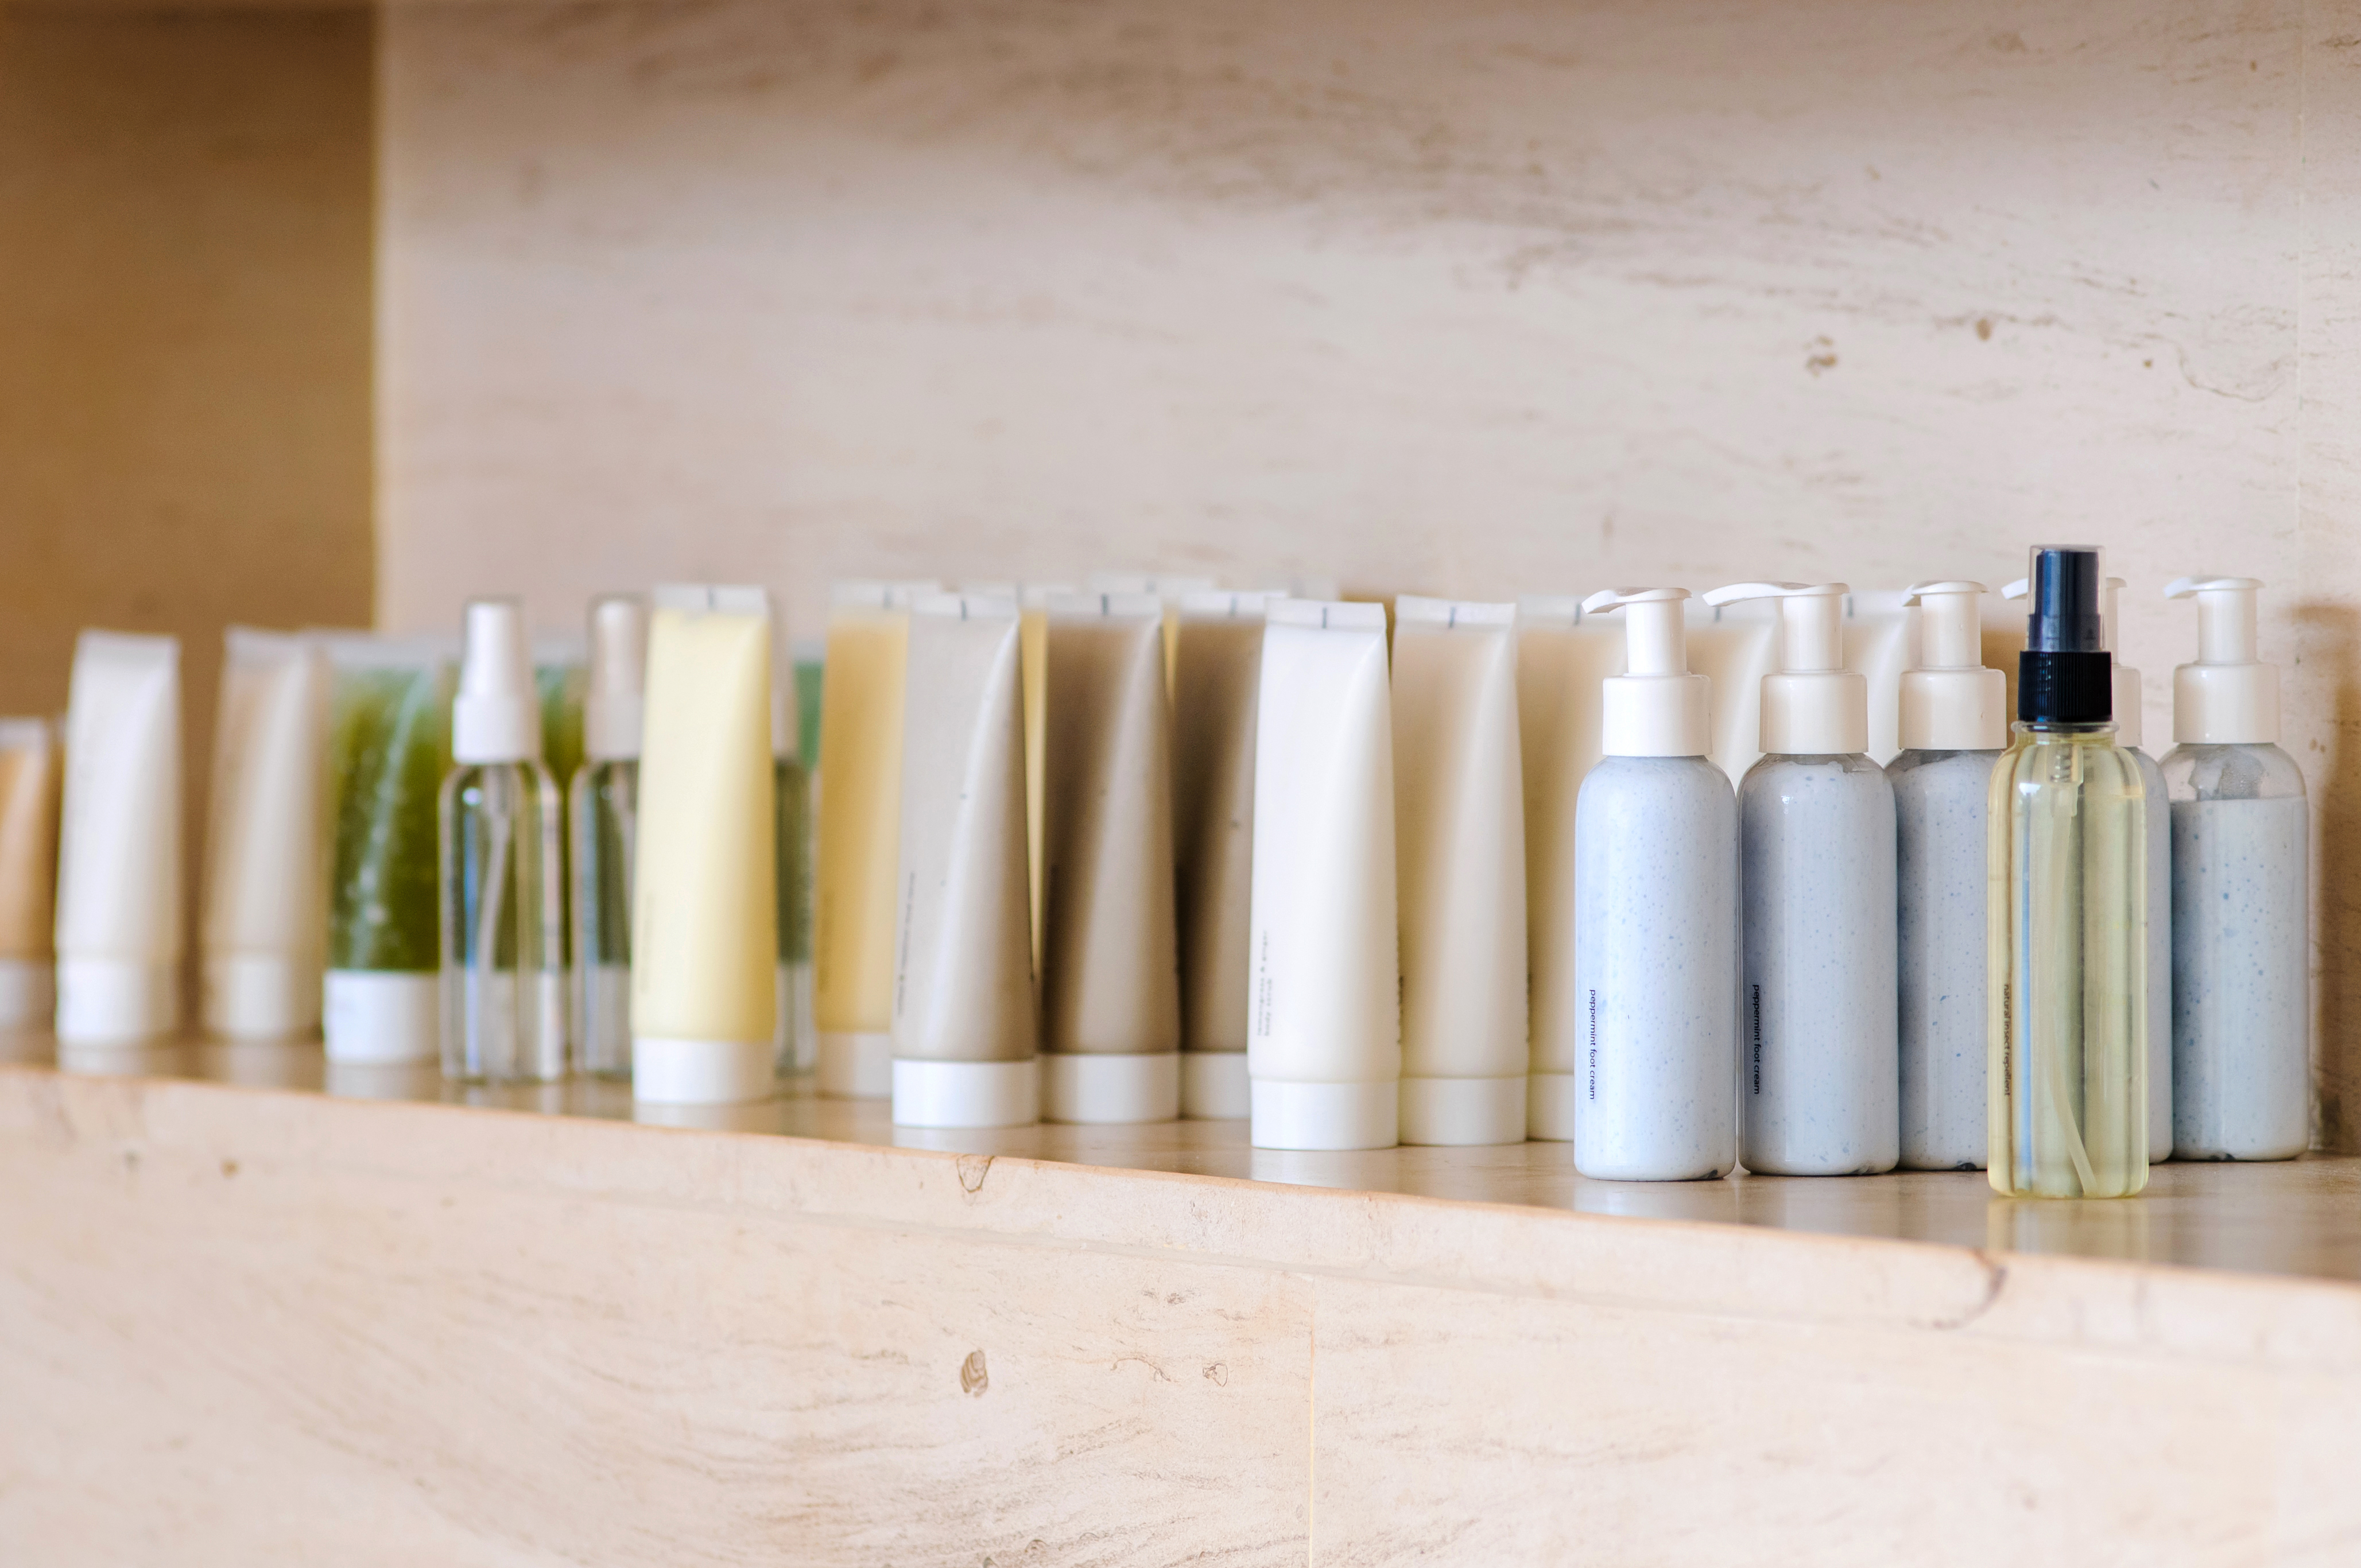 Get Rid of the Microbeads! They're Bad for You and the Environment